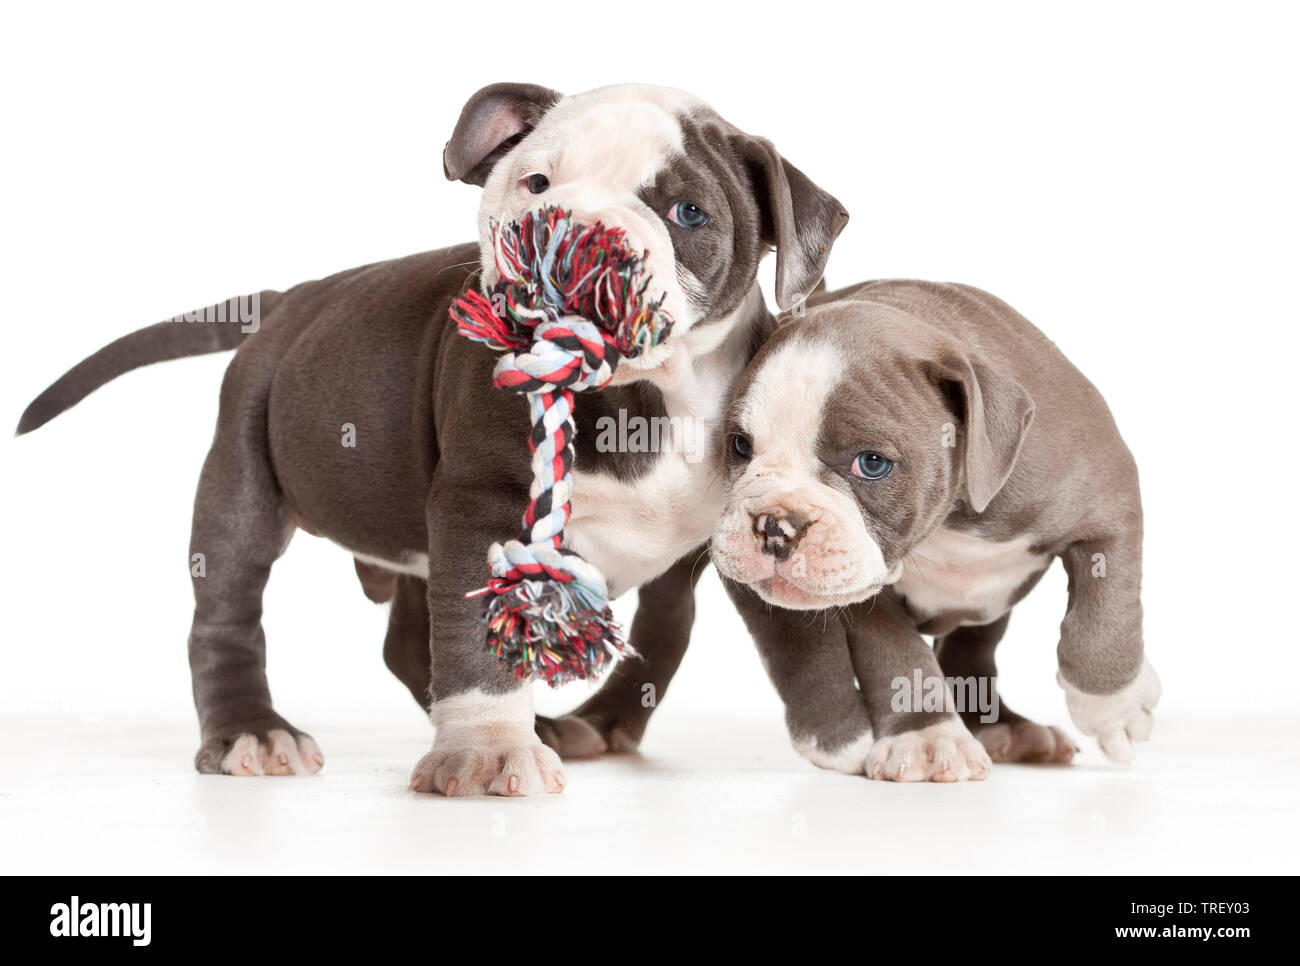 English Bulldog. Two puppies playing with a toy rope. Studio picture against a white background. Germany - Stock Image